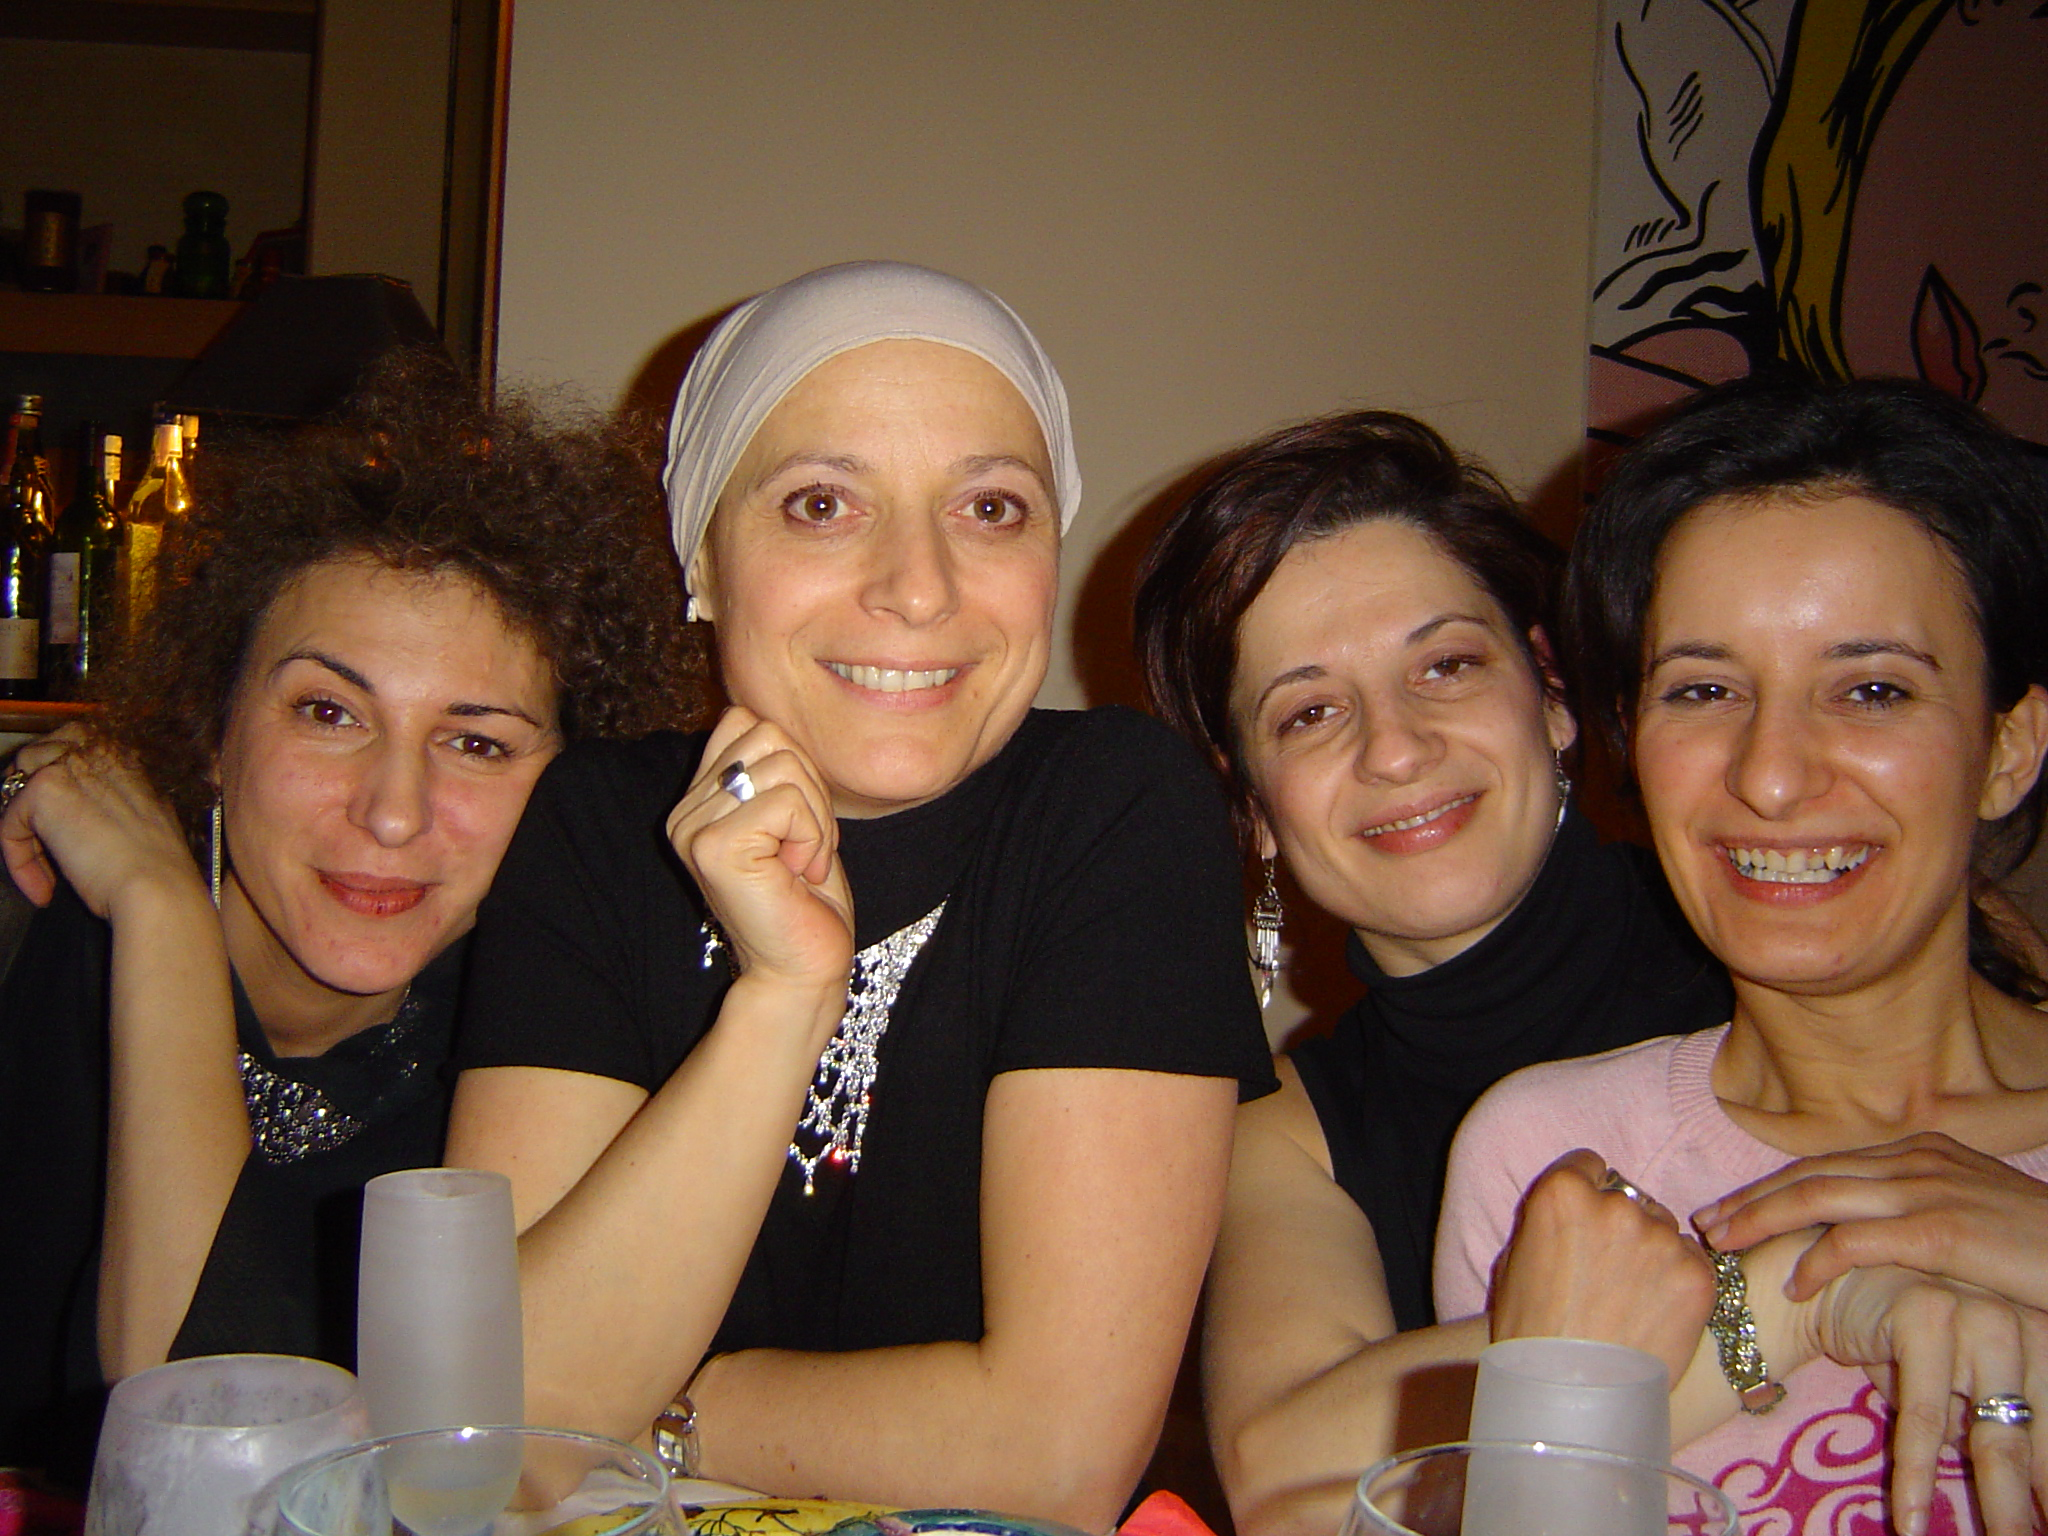 Paris. 2005. With my girlfriends Antonella van Rumund (to the left), and Carole Pean Mathurin and Laurence Brunet (to the right). A month or so into chemo after being diagnosed with my first breast cancer, and shortly after I first started practicing yoga.